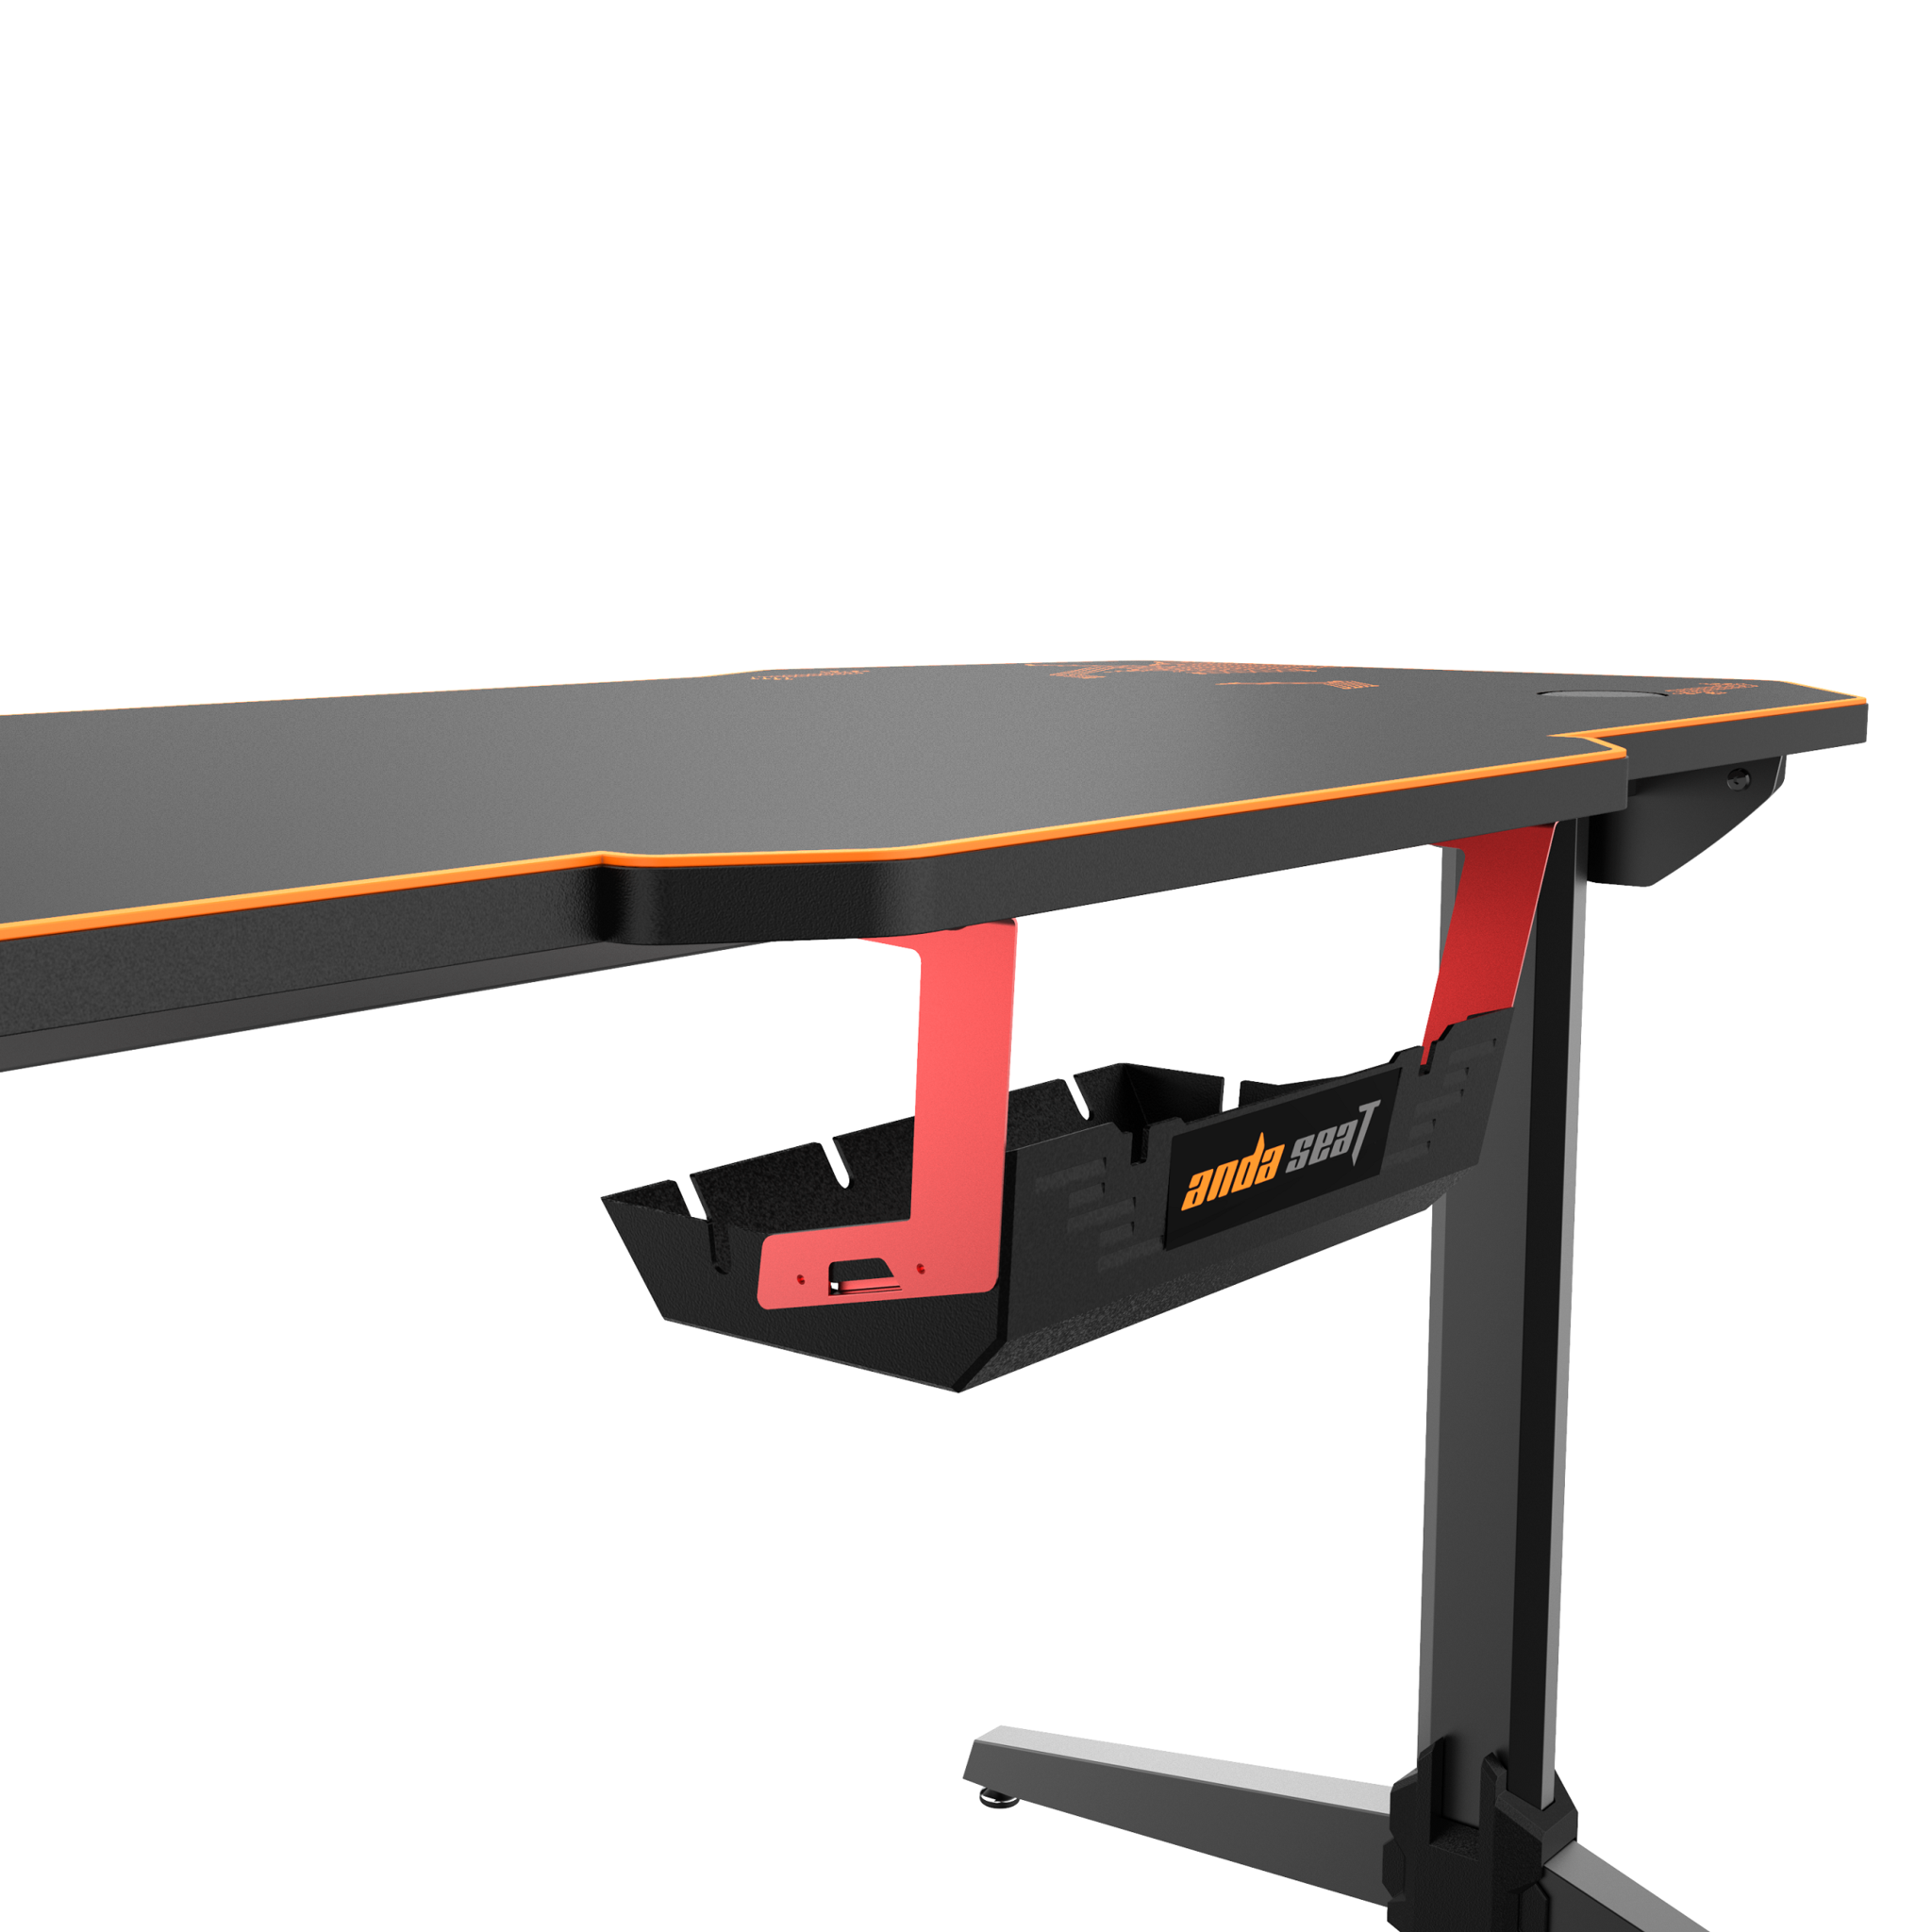 The AndaSeat Eagle 2 Gaming Desk is pretty tough to put together by yourself.